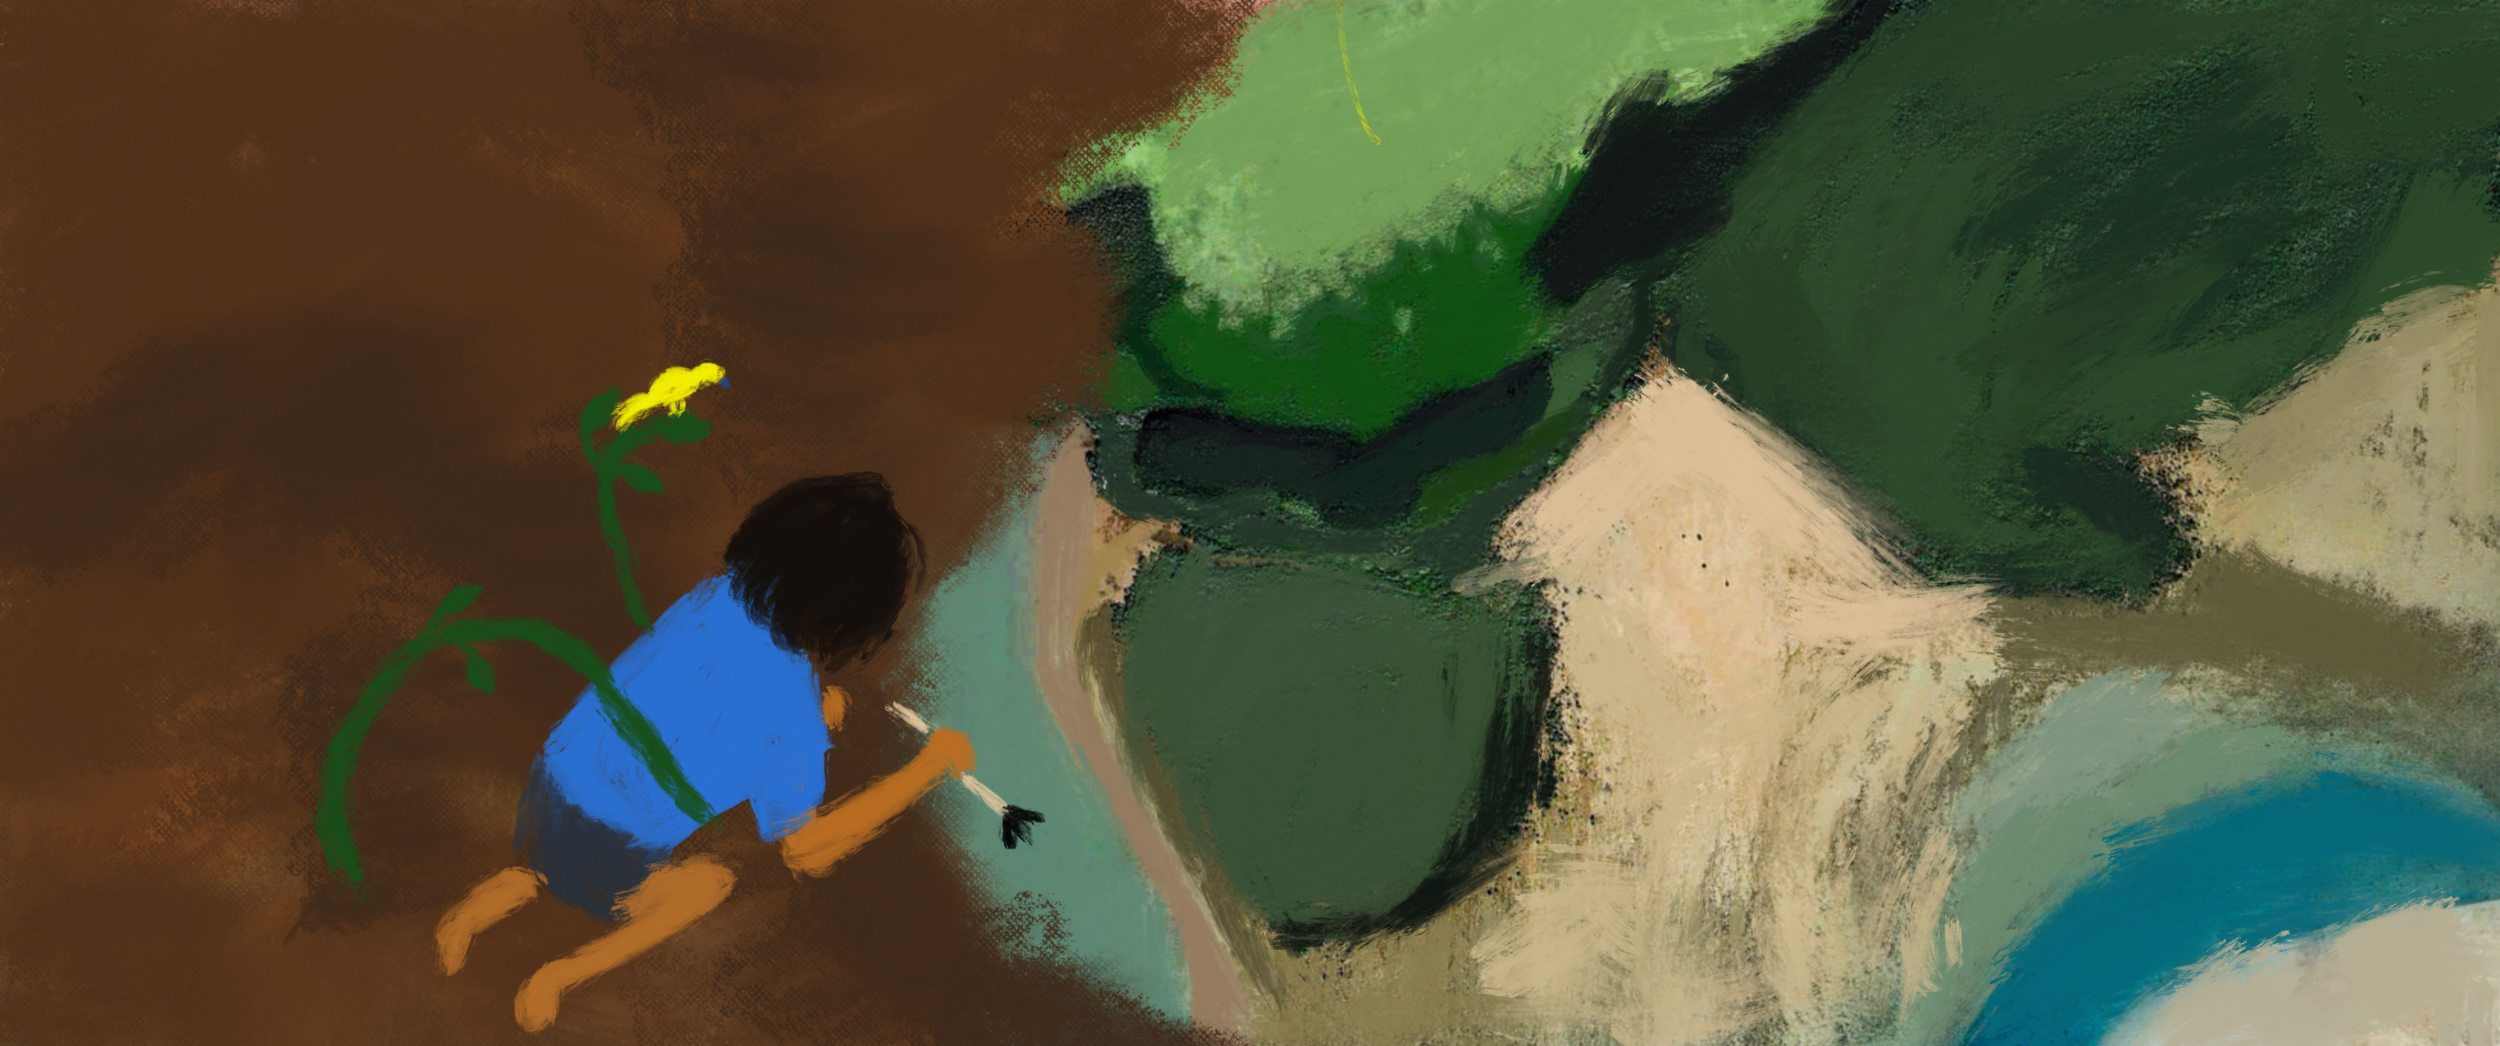 Boy_and_the_tree_13.png